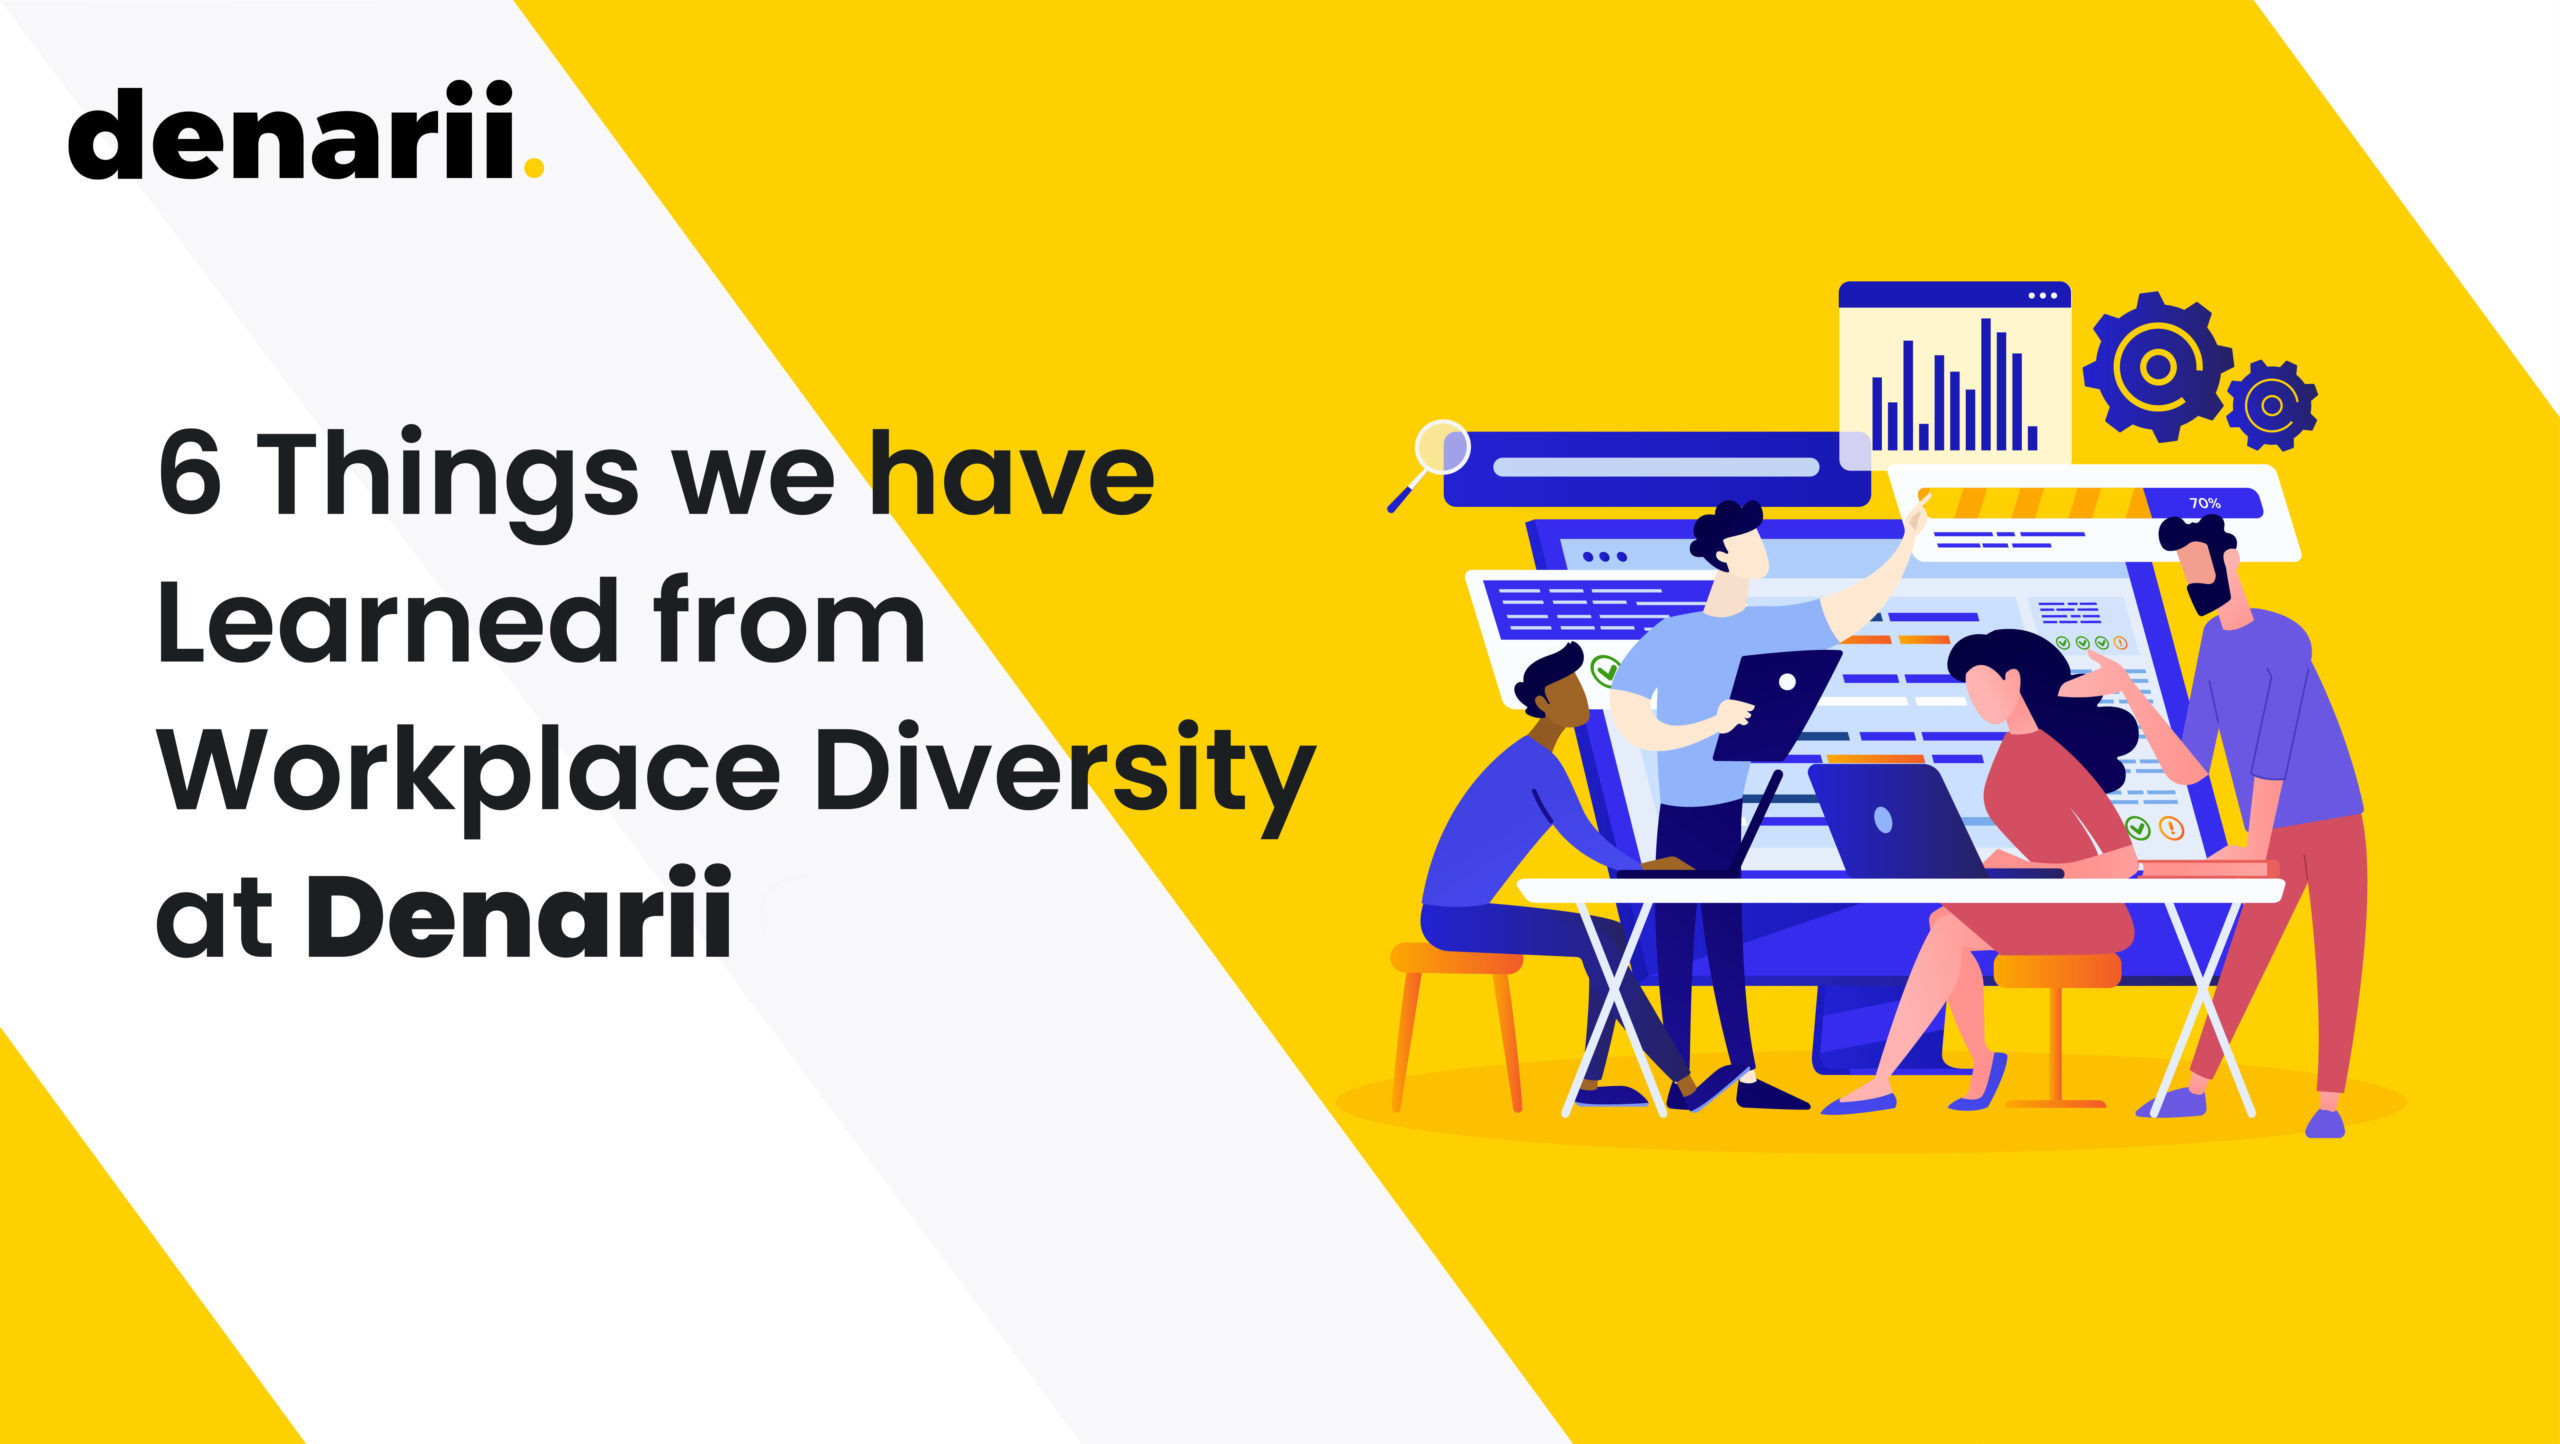 6 Things we have Learned from Workplace Diversity at Denarii Cash